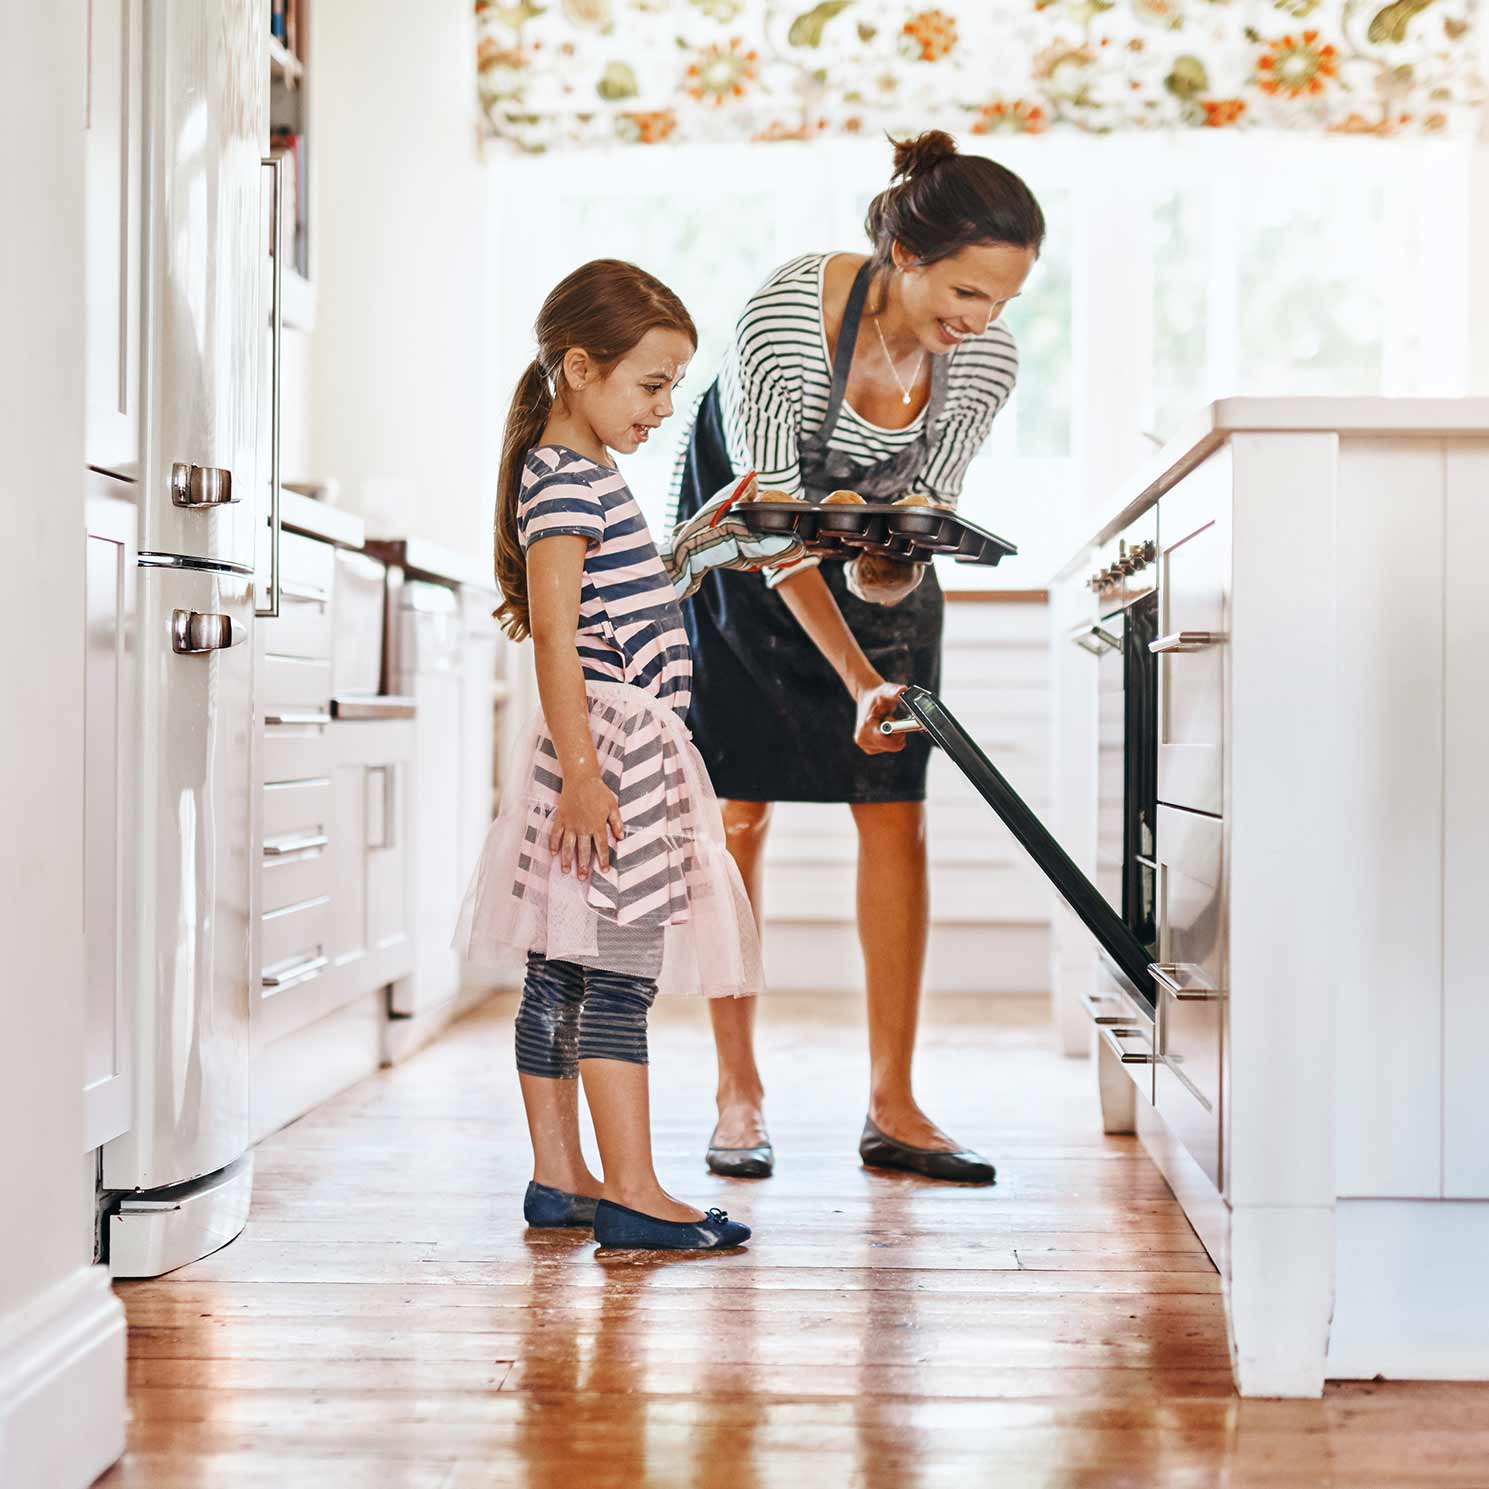 <p><strong>As you come up with your hardwood floor maintenance routine, remember that the overall use of your floors will dictate how often you need to clean.</strong> High-traffic areas may need to be mopped or polished more often, while less-used floors can go a bit longer between intense cleanings.</p><br/>